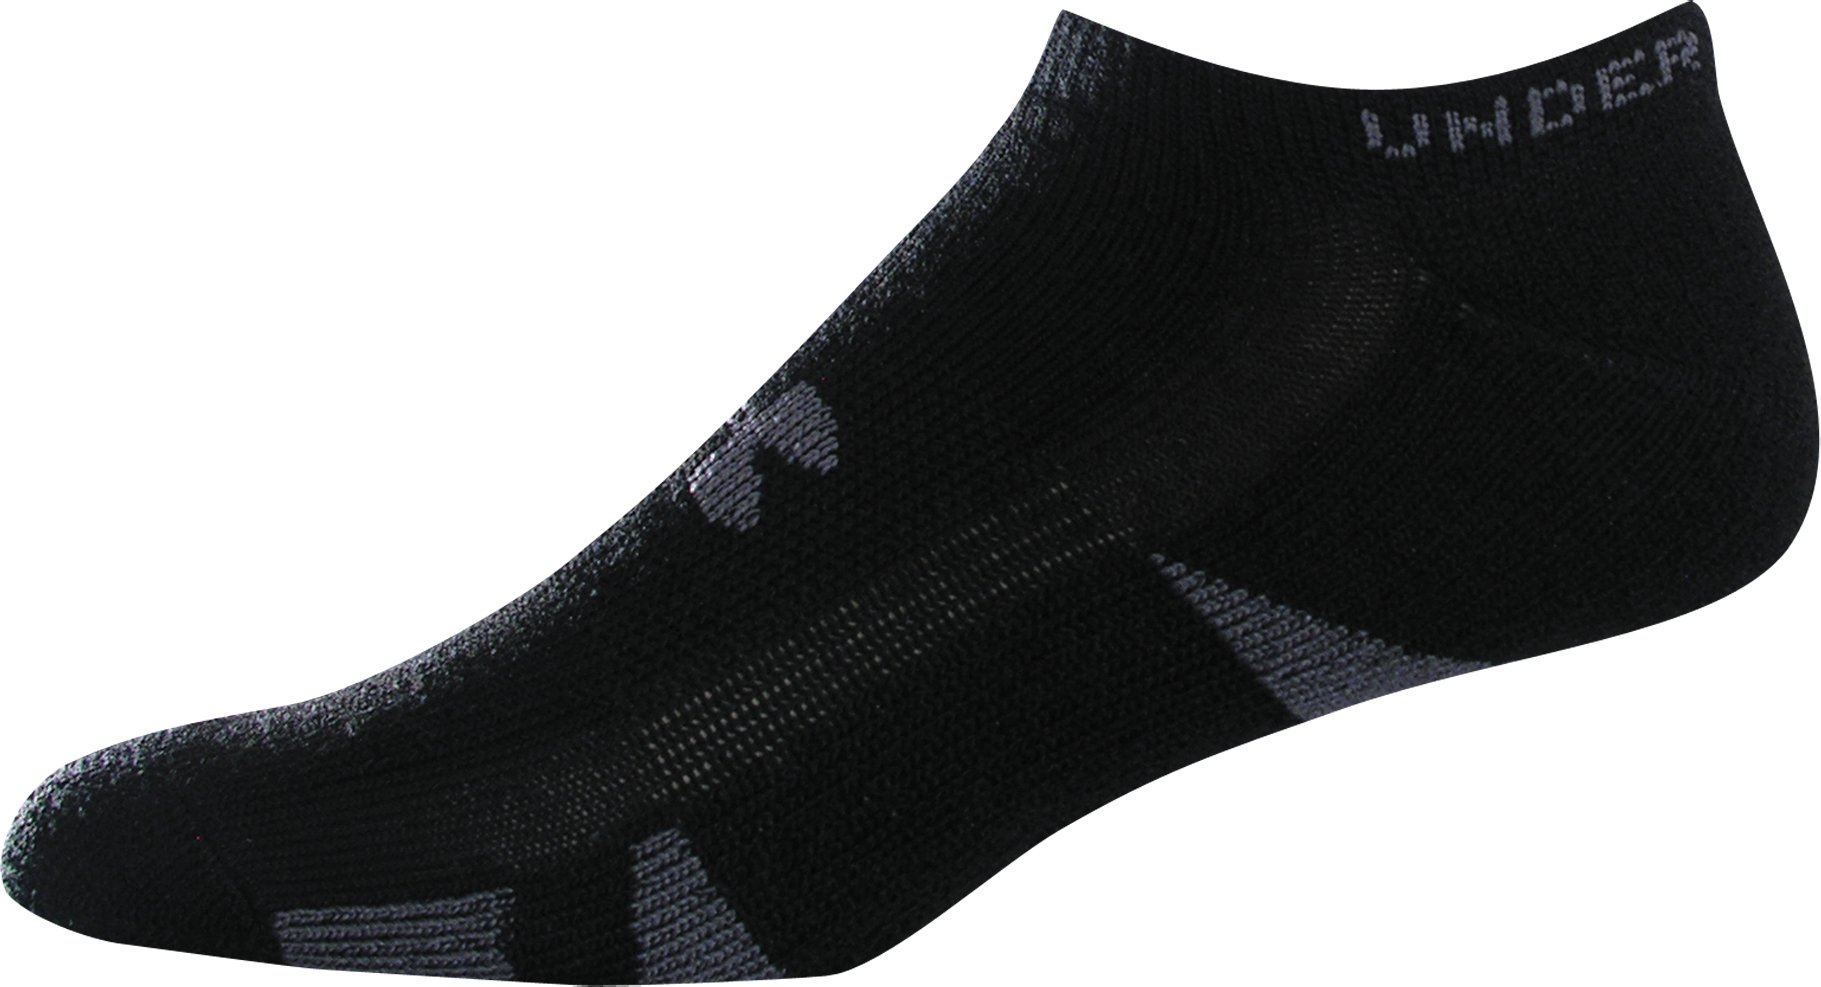 HeatGear® Trainer No Show Socks 4-Pack, Black , zoomed image